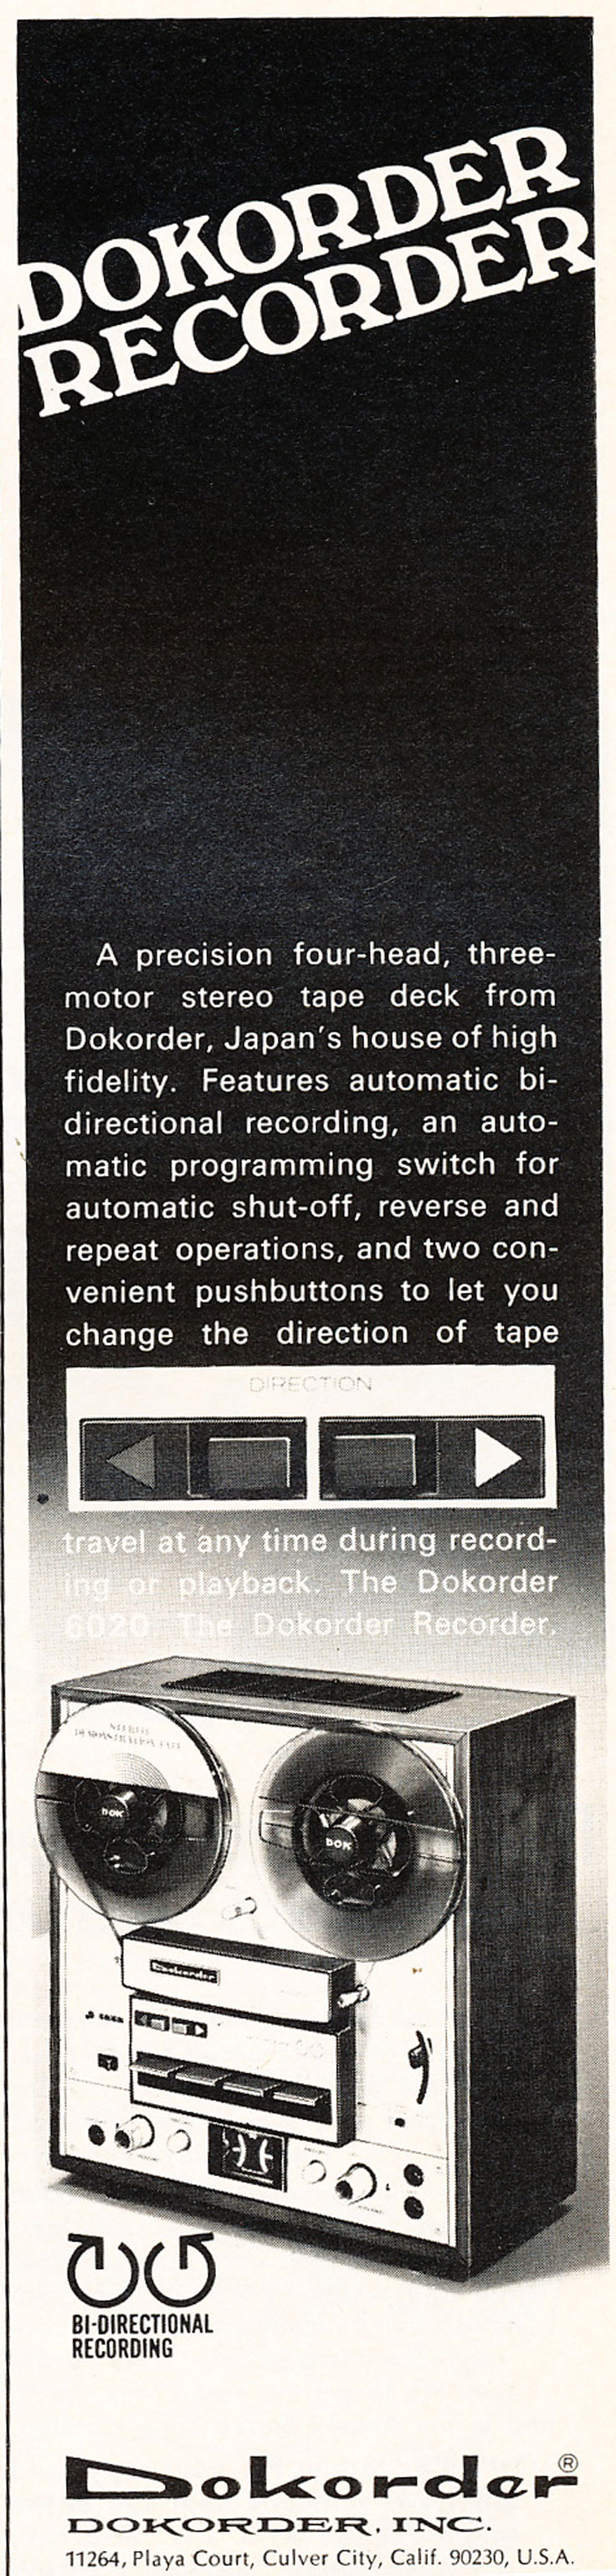 1972 Dorkorder 6020 reel to reel tape recorder ad in the Reel2ReelTexas.com vintage recording collection